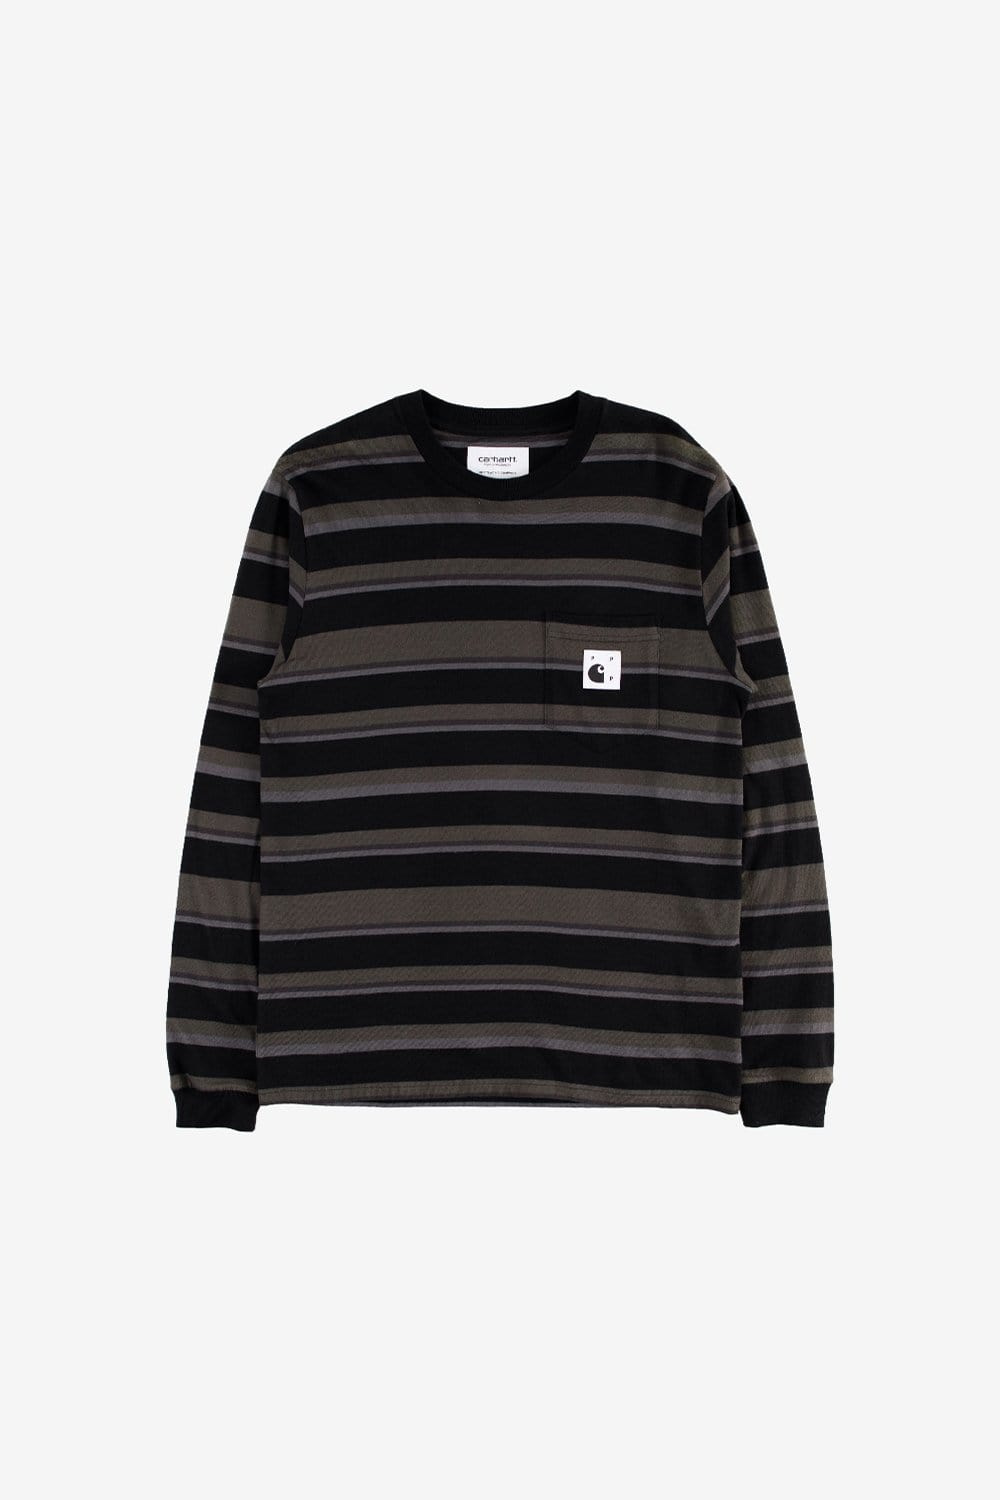 Carhartt WIP Apparel Carhartt WIP x Pop Trading Company Long Sleeve Pocket Shirt